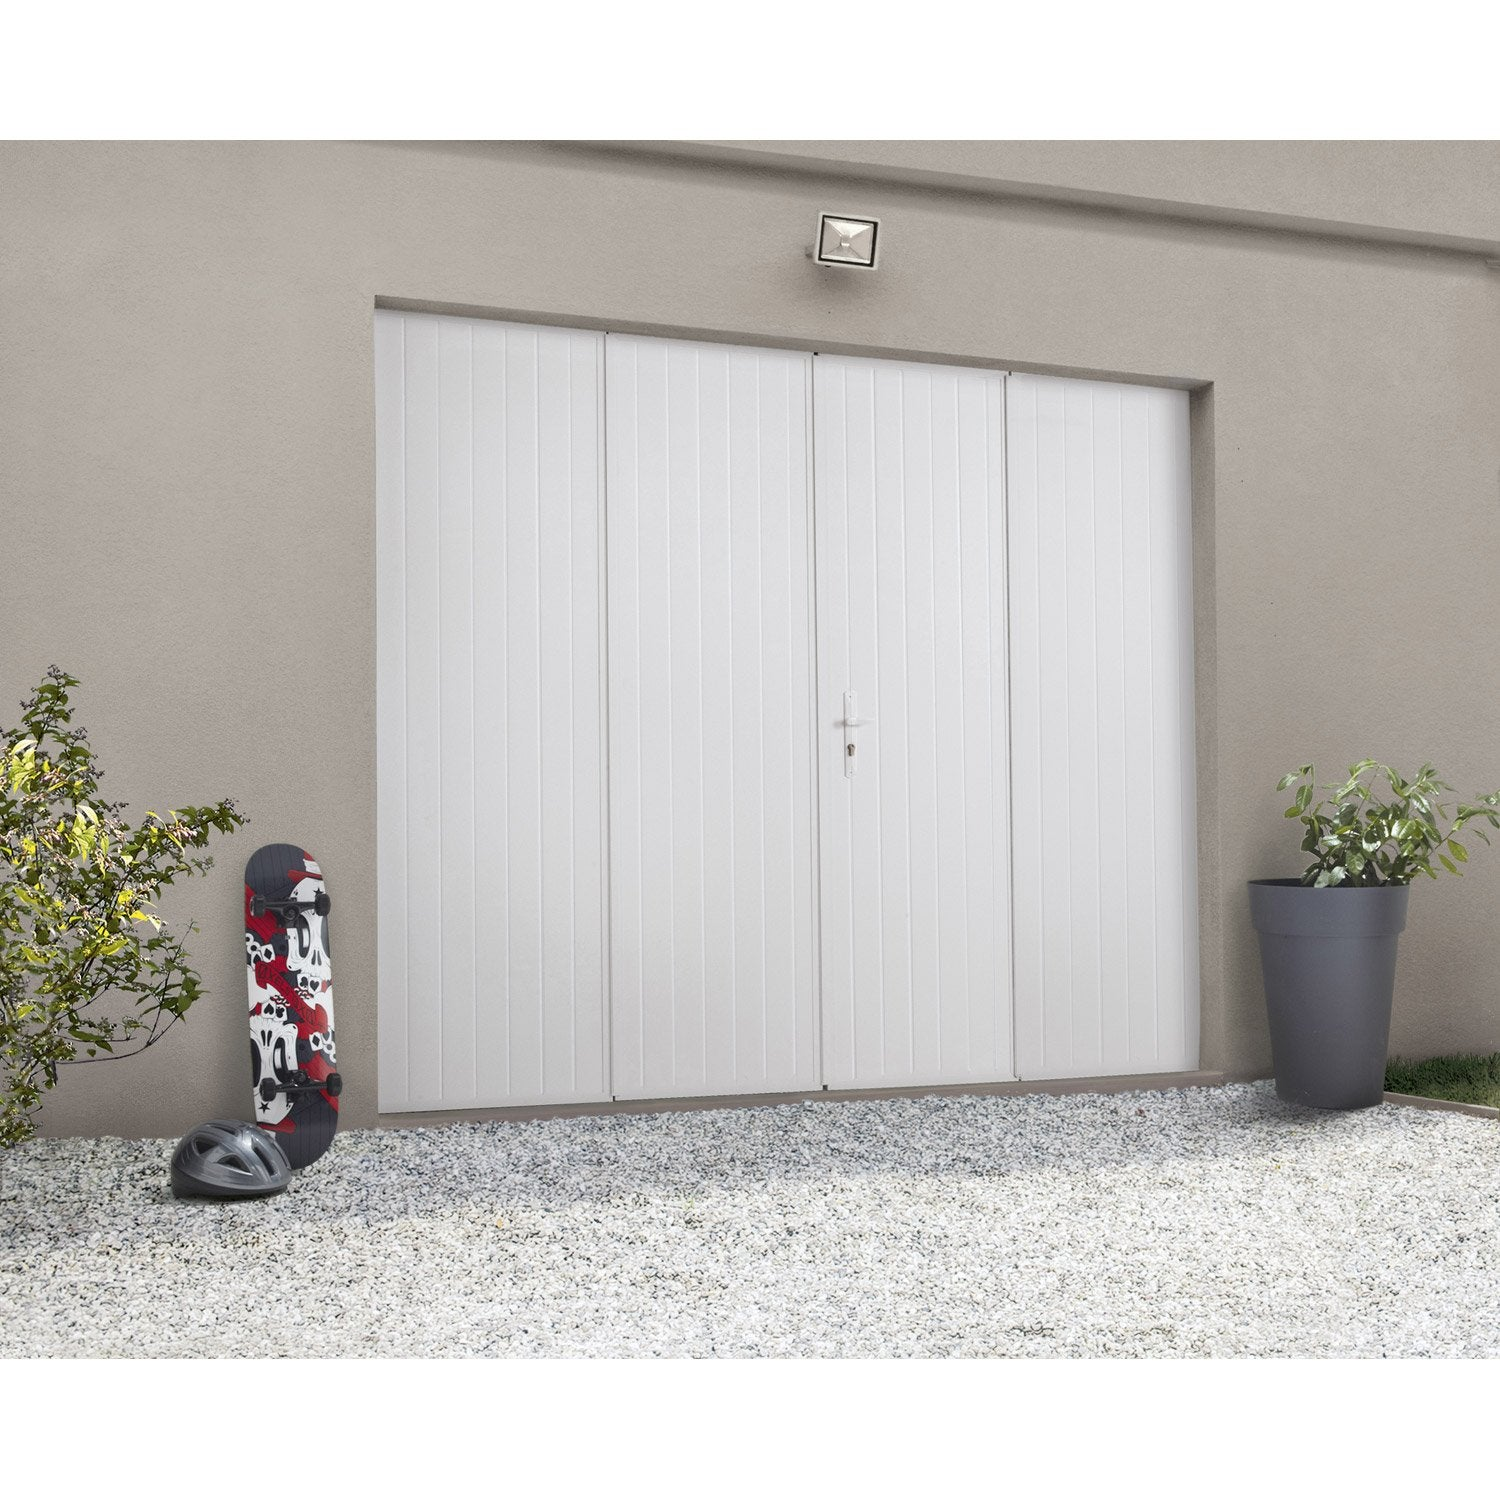 Porte de garage pliante manuelle artens essentiel 200 x for Porte de garage sectionnelle 220 x 200